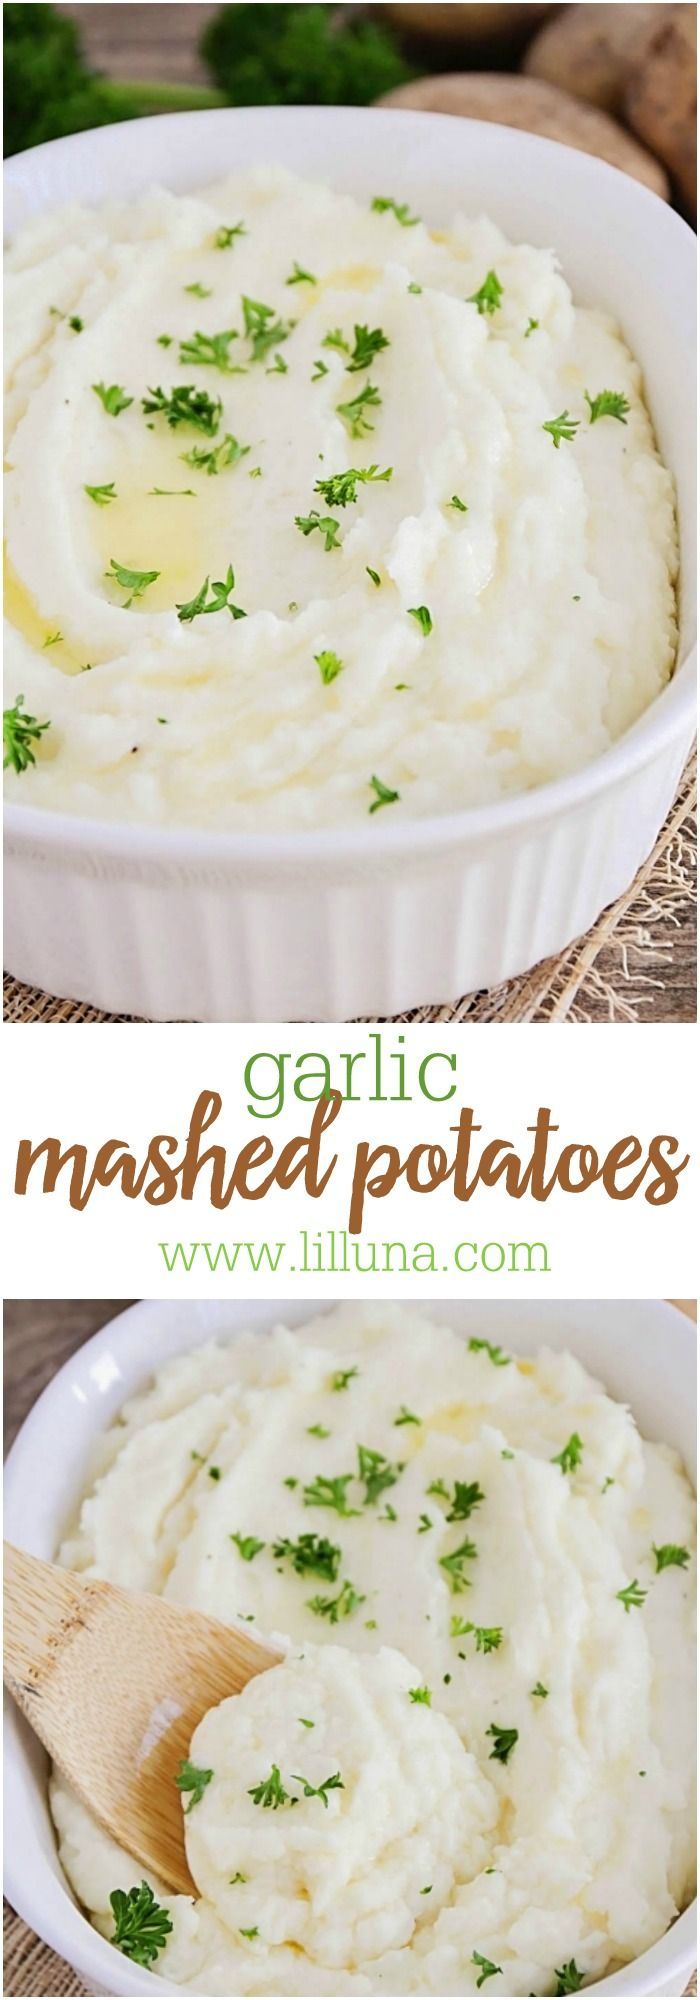 Yummy and Easy Garlic Mashed Potatoes. Creamy potatoes with a hint of garlic! Perfect side dish!